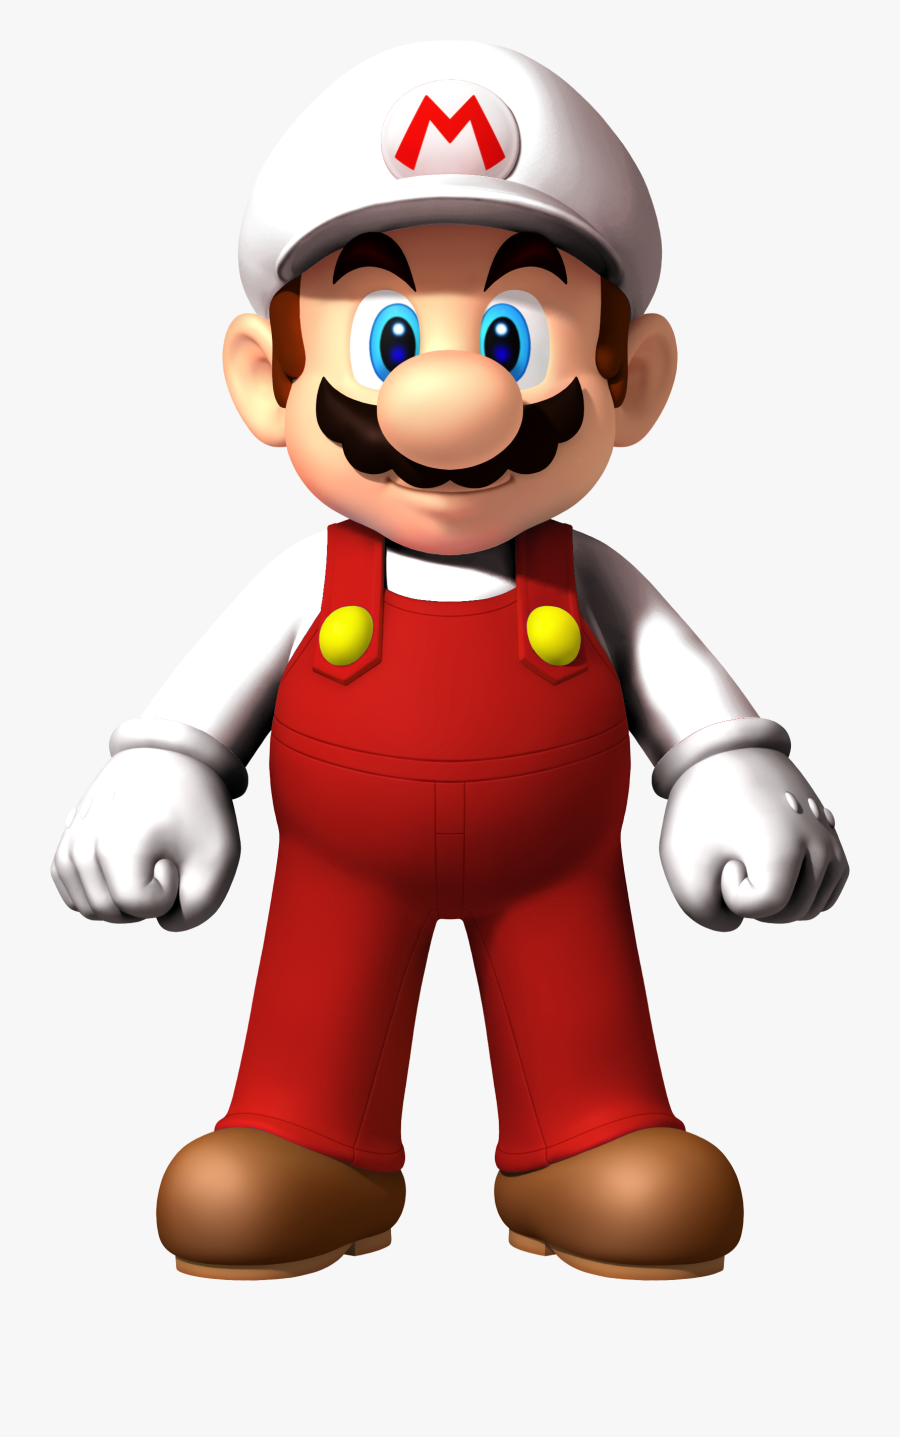 Mario Clipart Walking - New Super Mario Bros Wii Mario, Transparent Clipart